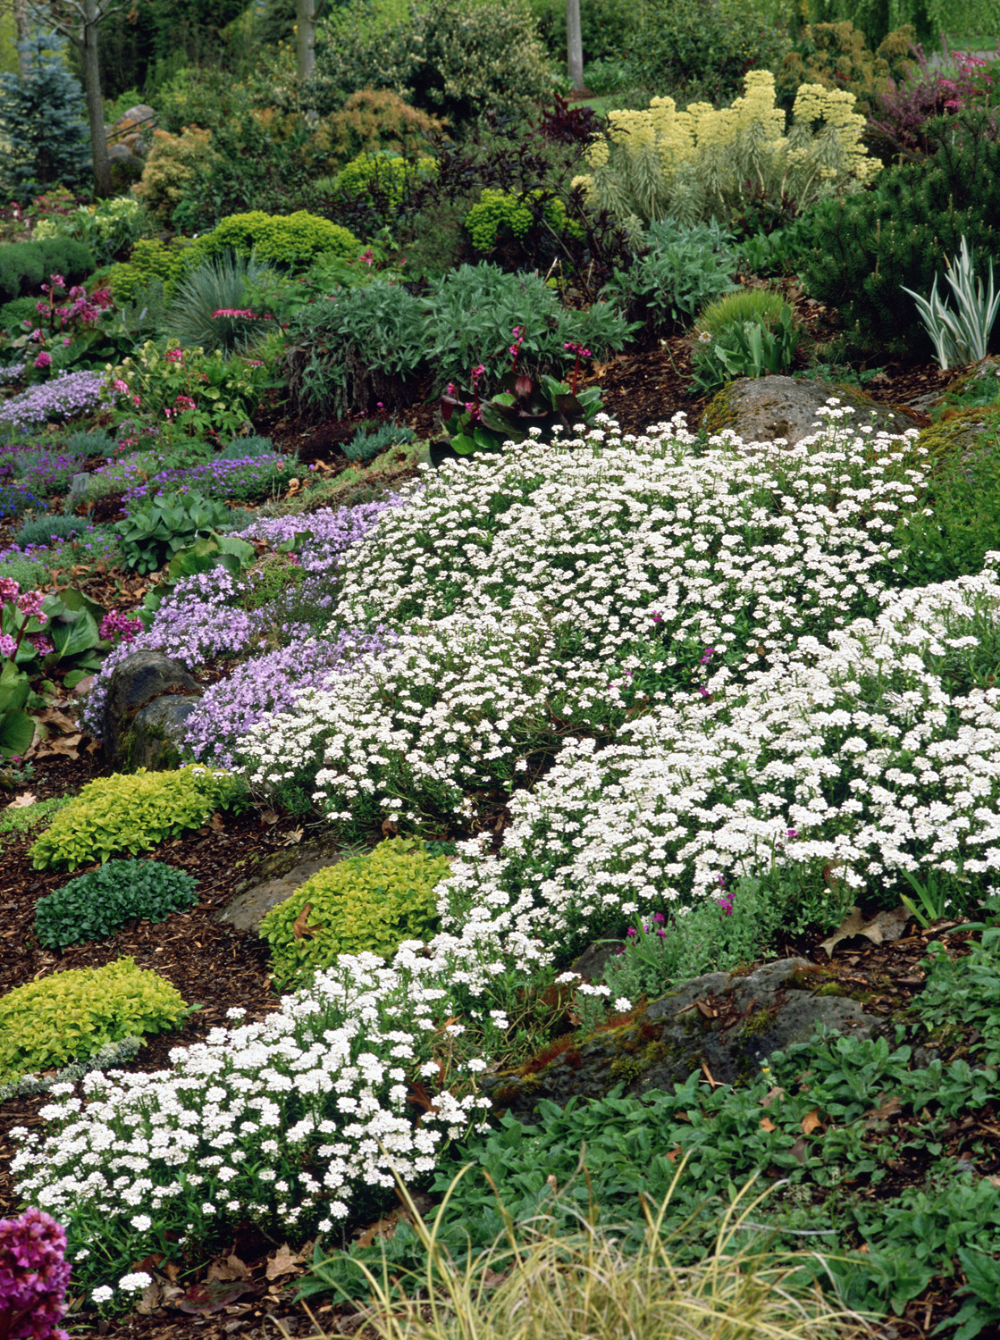 Purity Candytuft Monrovia Purity Candytuft In 2020 Winter Flowers Garden Backyard Landscaping Plants